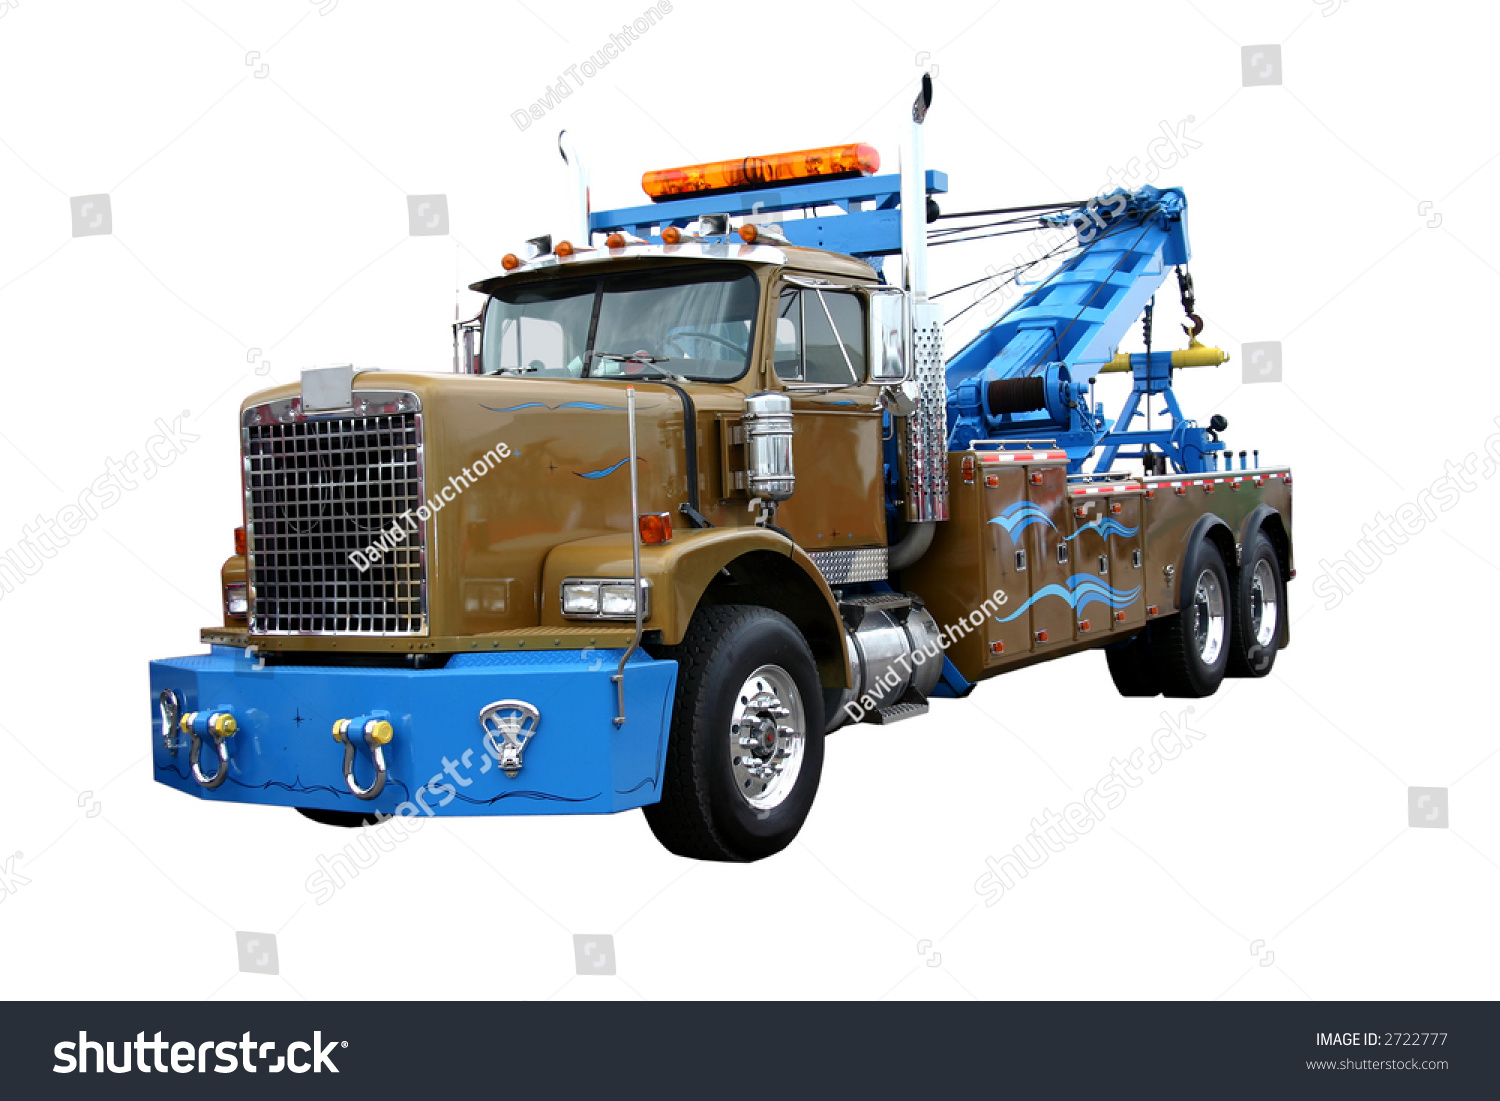 heavy duty wrecker used towing semi stock photo 2722777 shutterstock. Black Bedroom Furniture Sets. Home Design Ideas